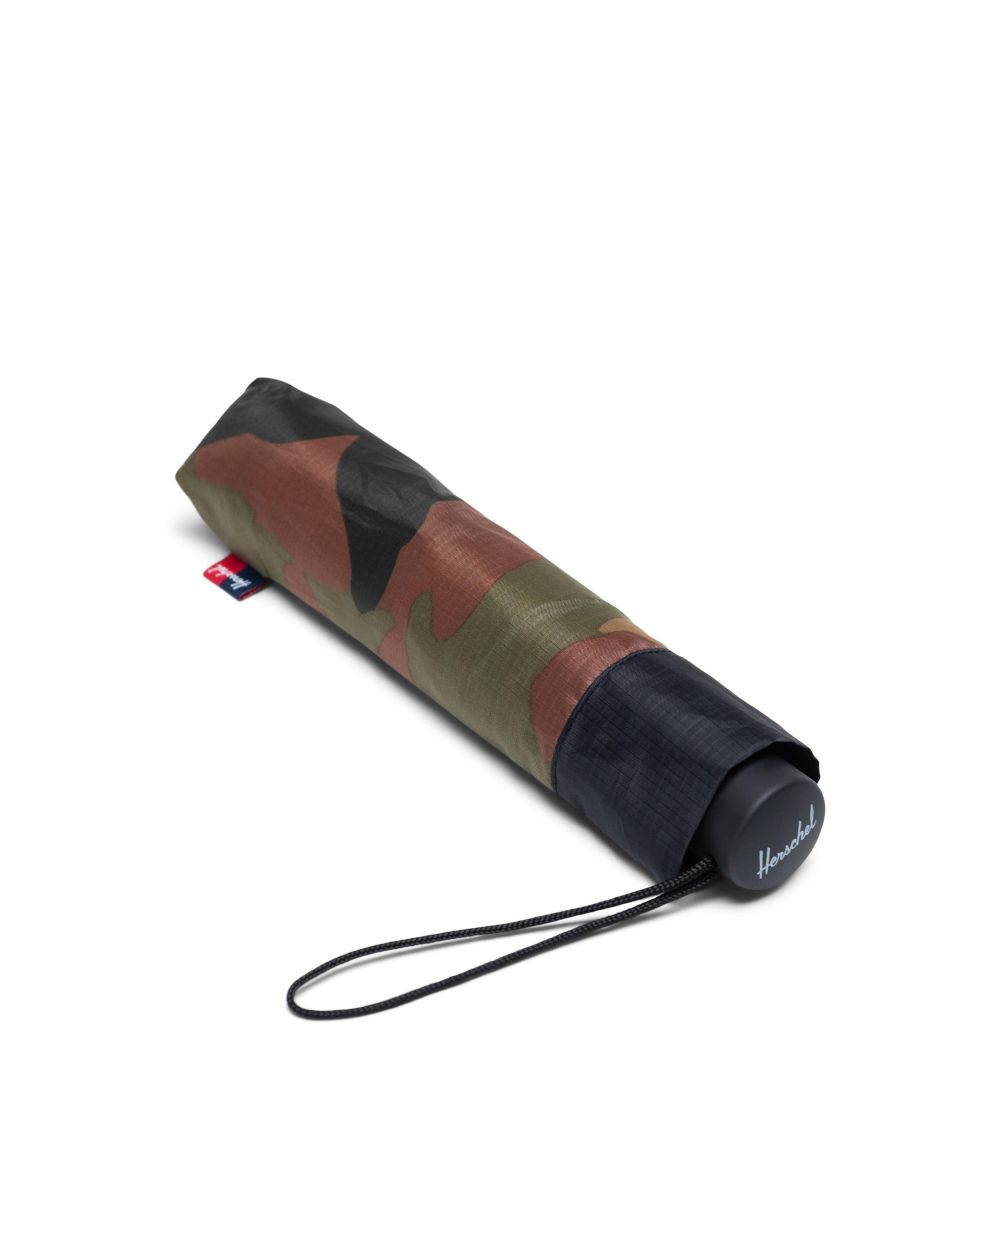 travel gift idea of closed compact umbrella in army colours